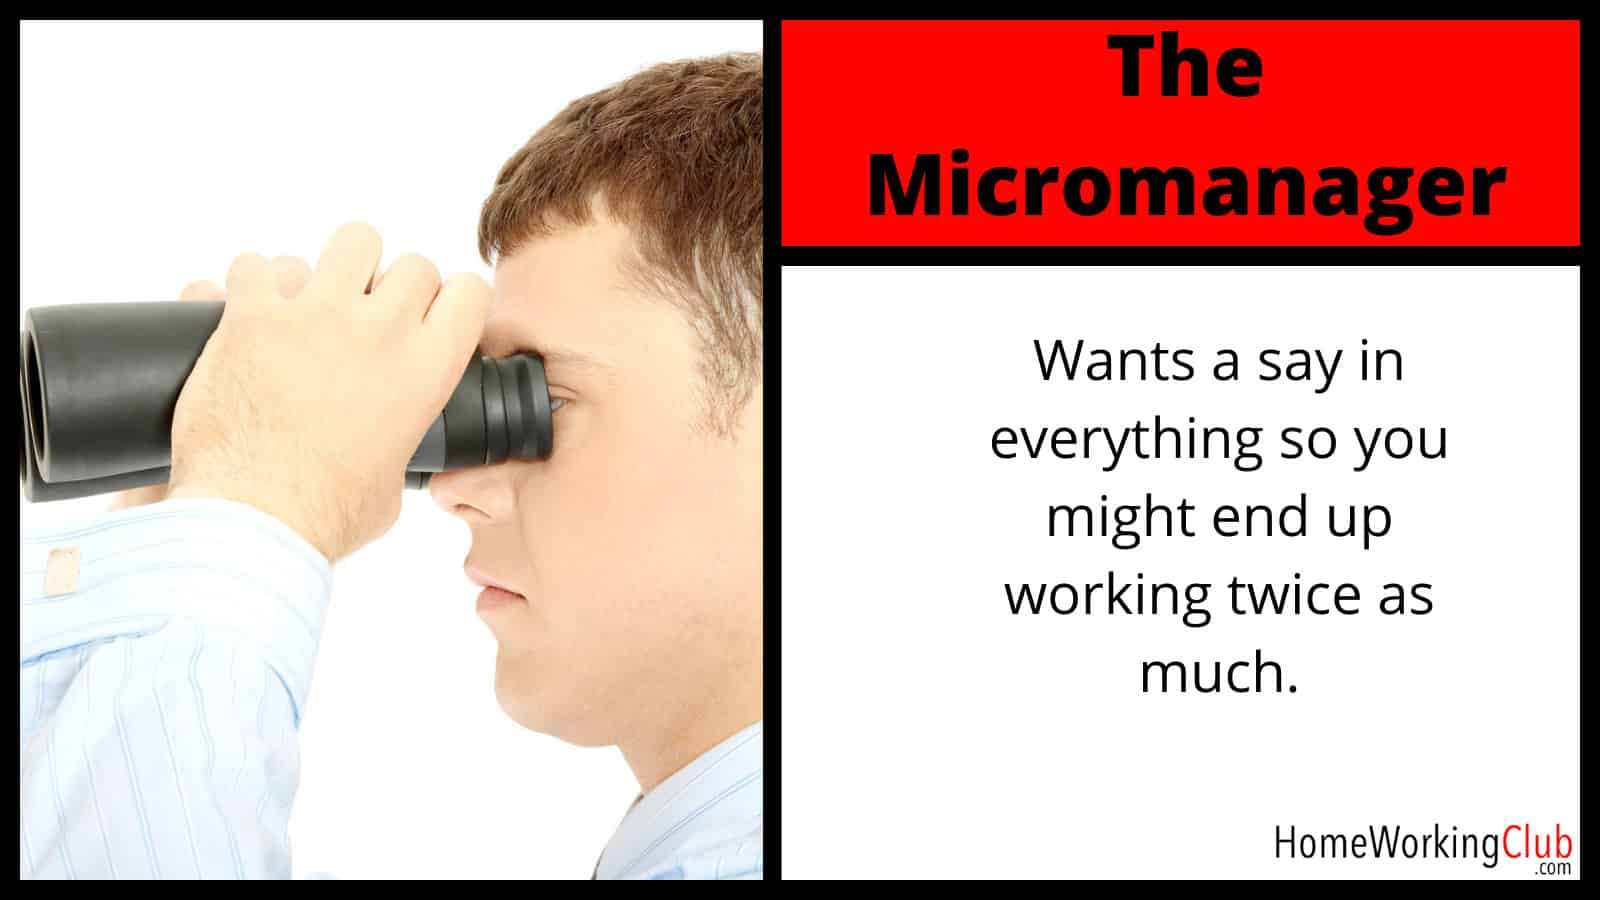 Client Type: The Micromanager